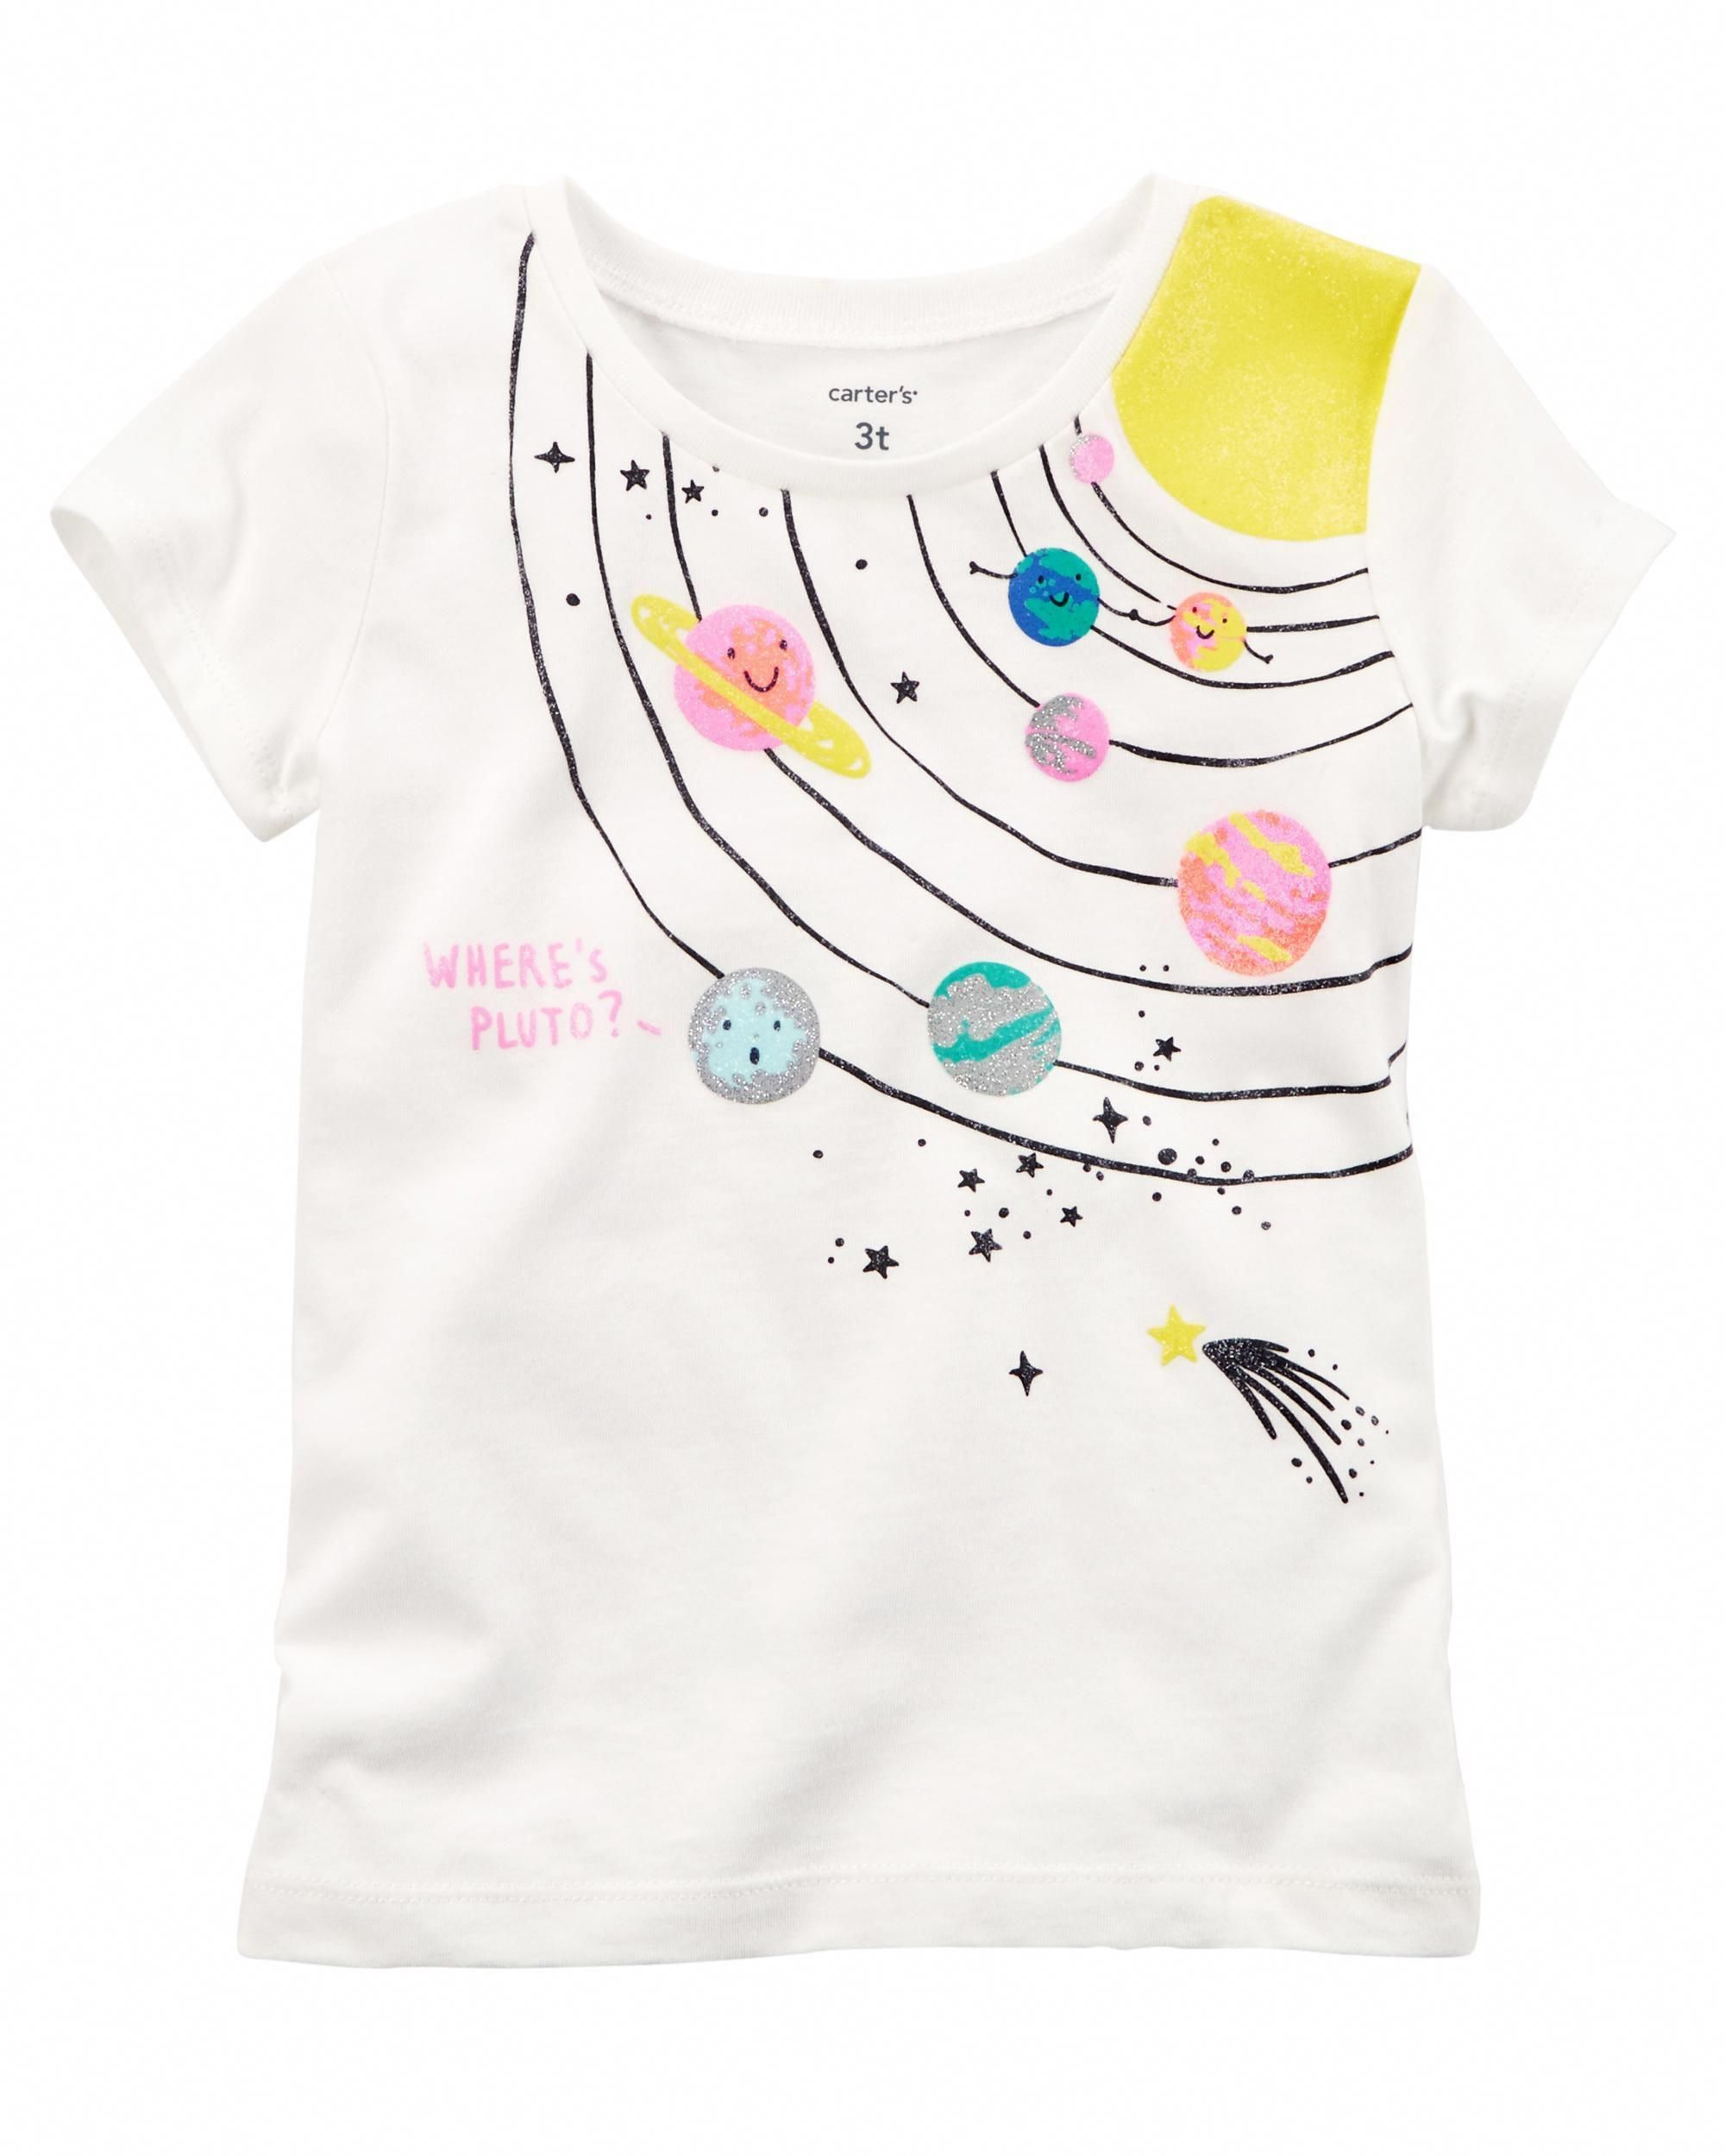 Kids Clothing Stores Near Me Product ID4370519319